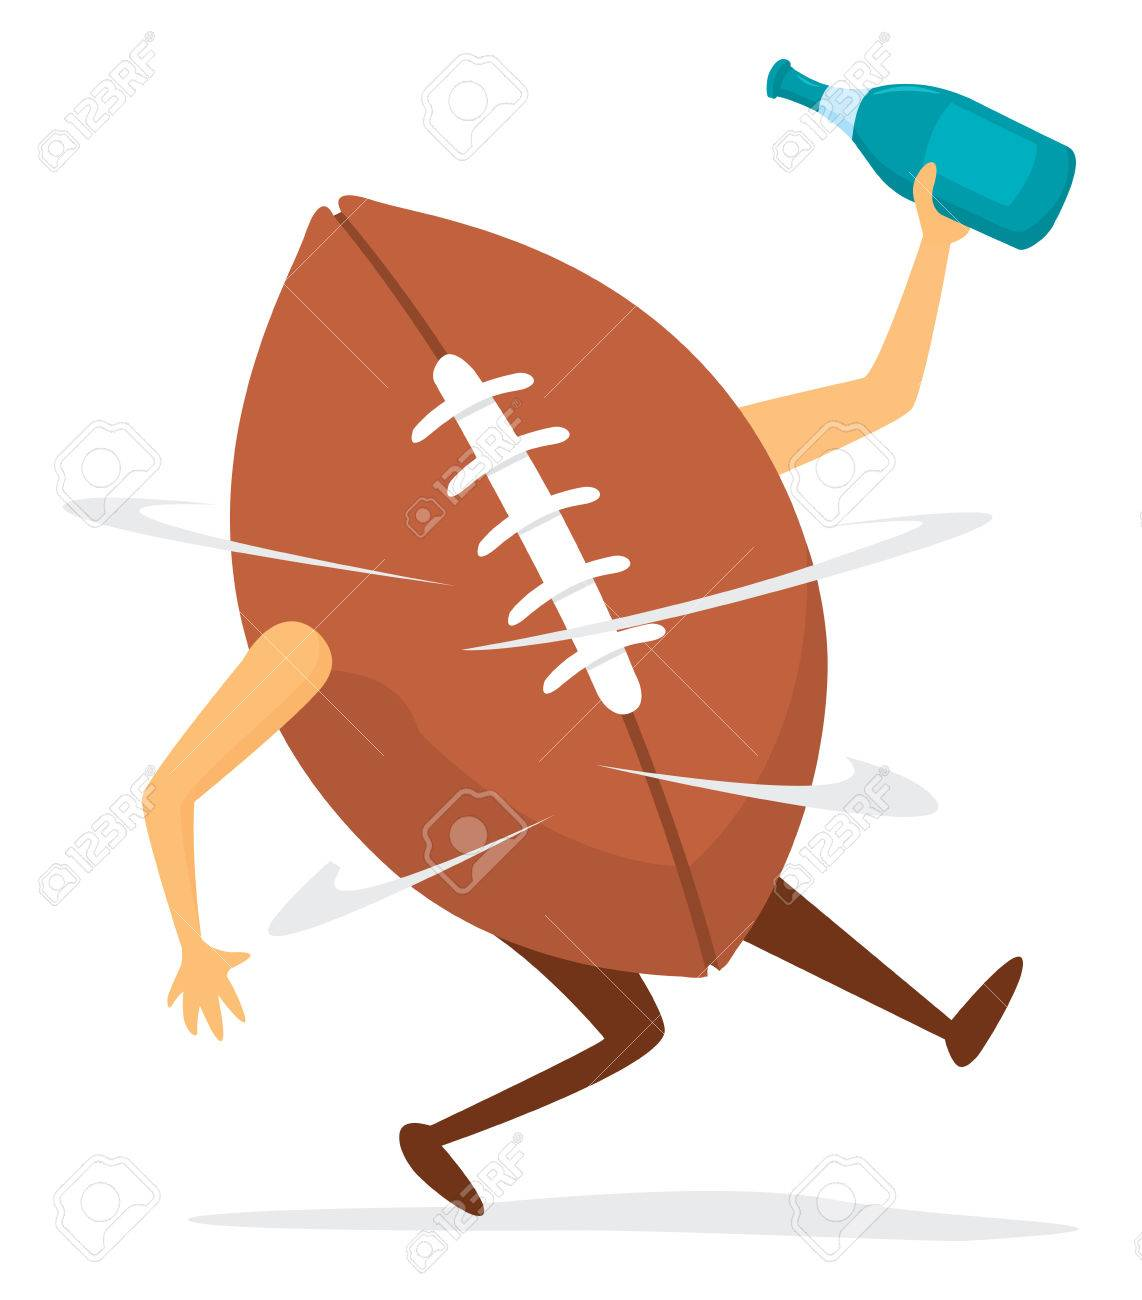 cartoon illustration of funny football dizzy after fumble royalty